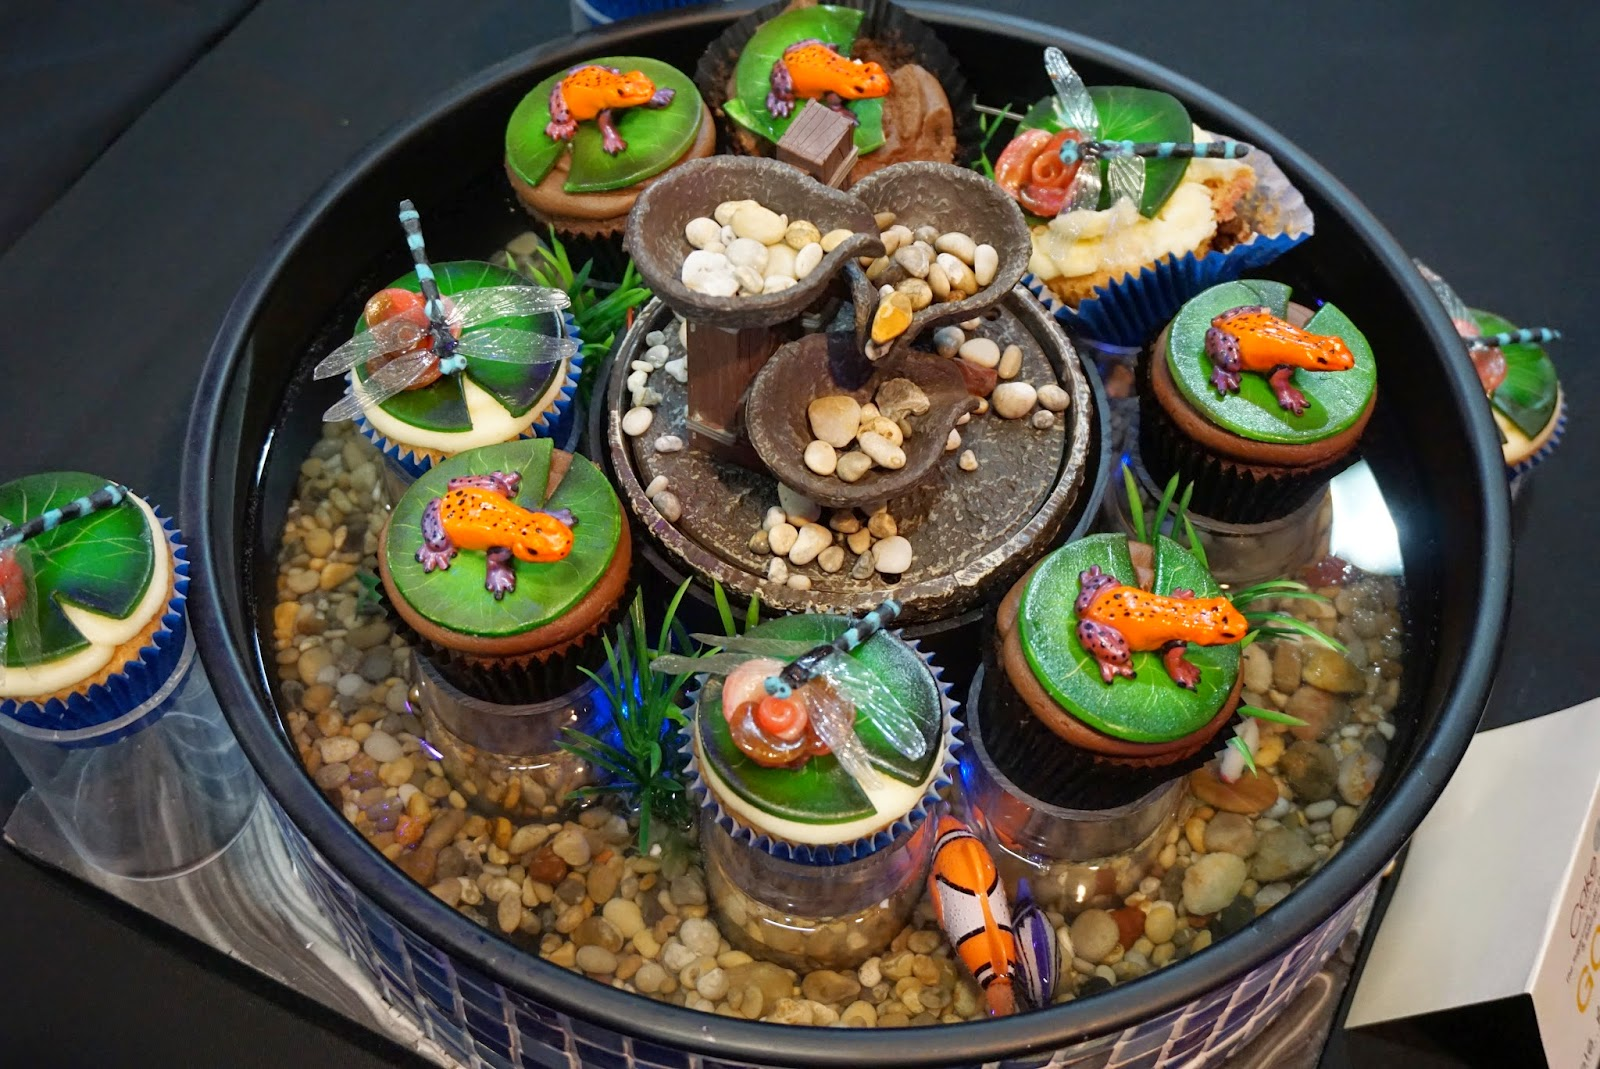 Cake International Show Manchester 2015 Pond Cupcakes